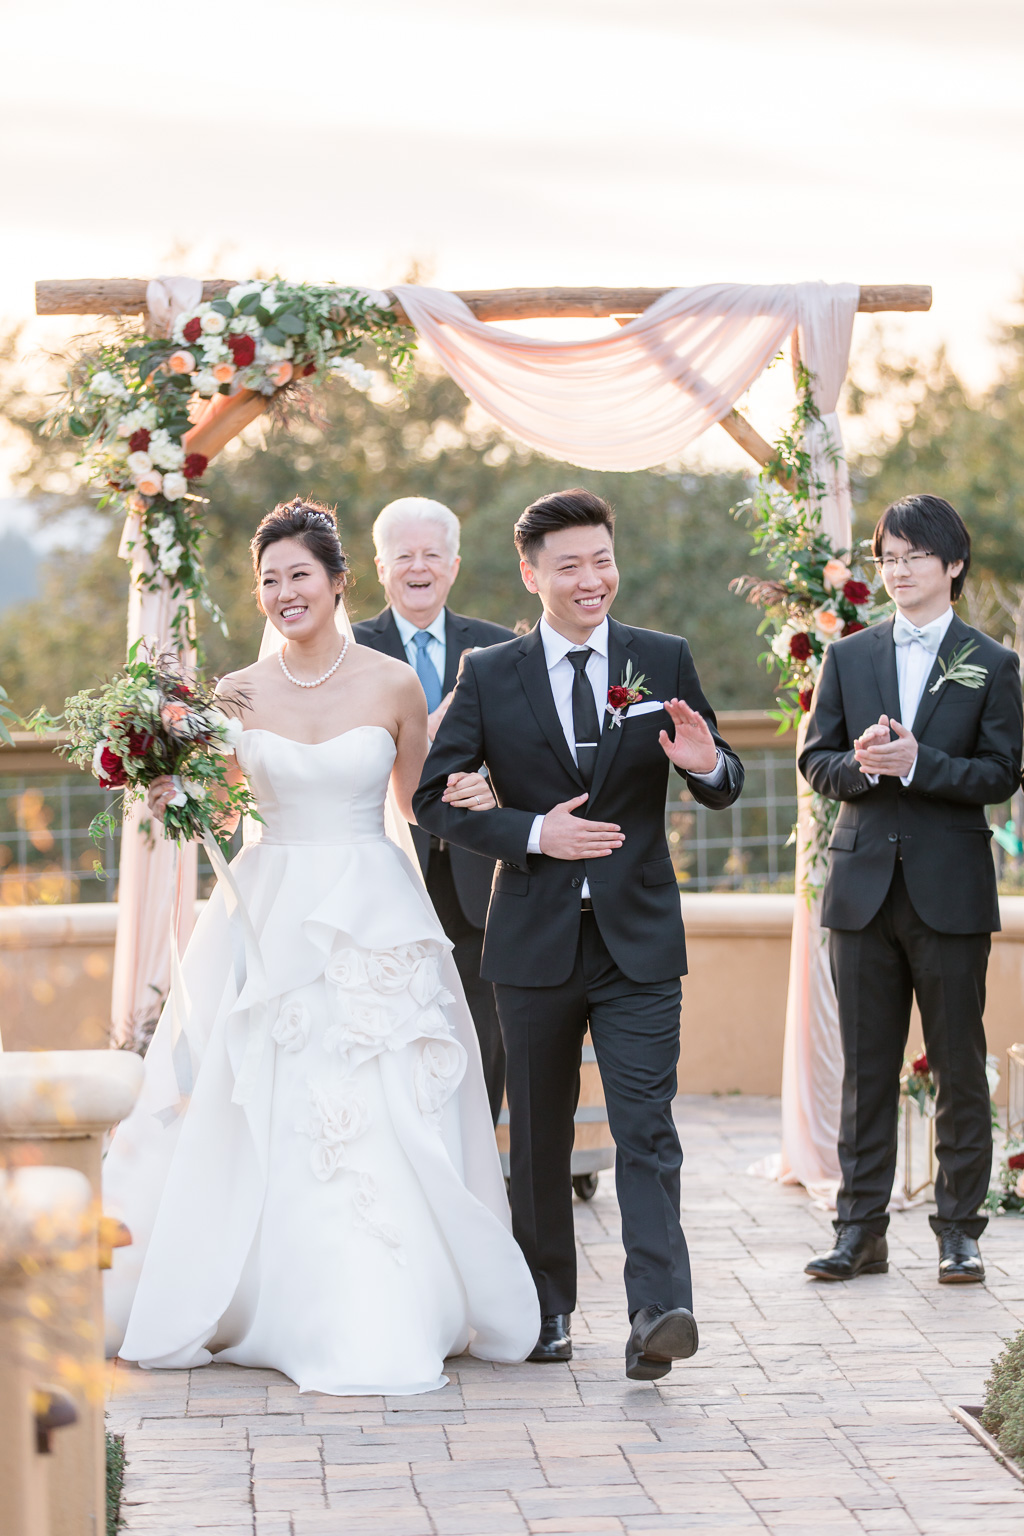 waving at their guests at the end of the ceremony